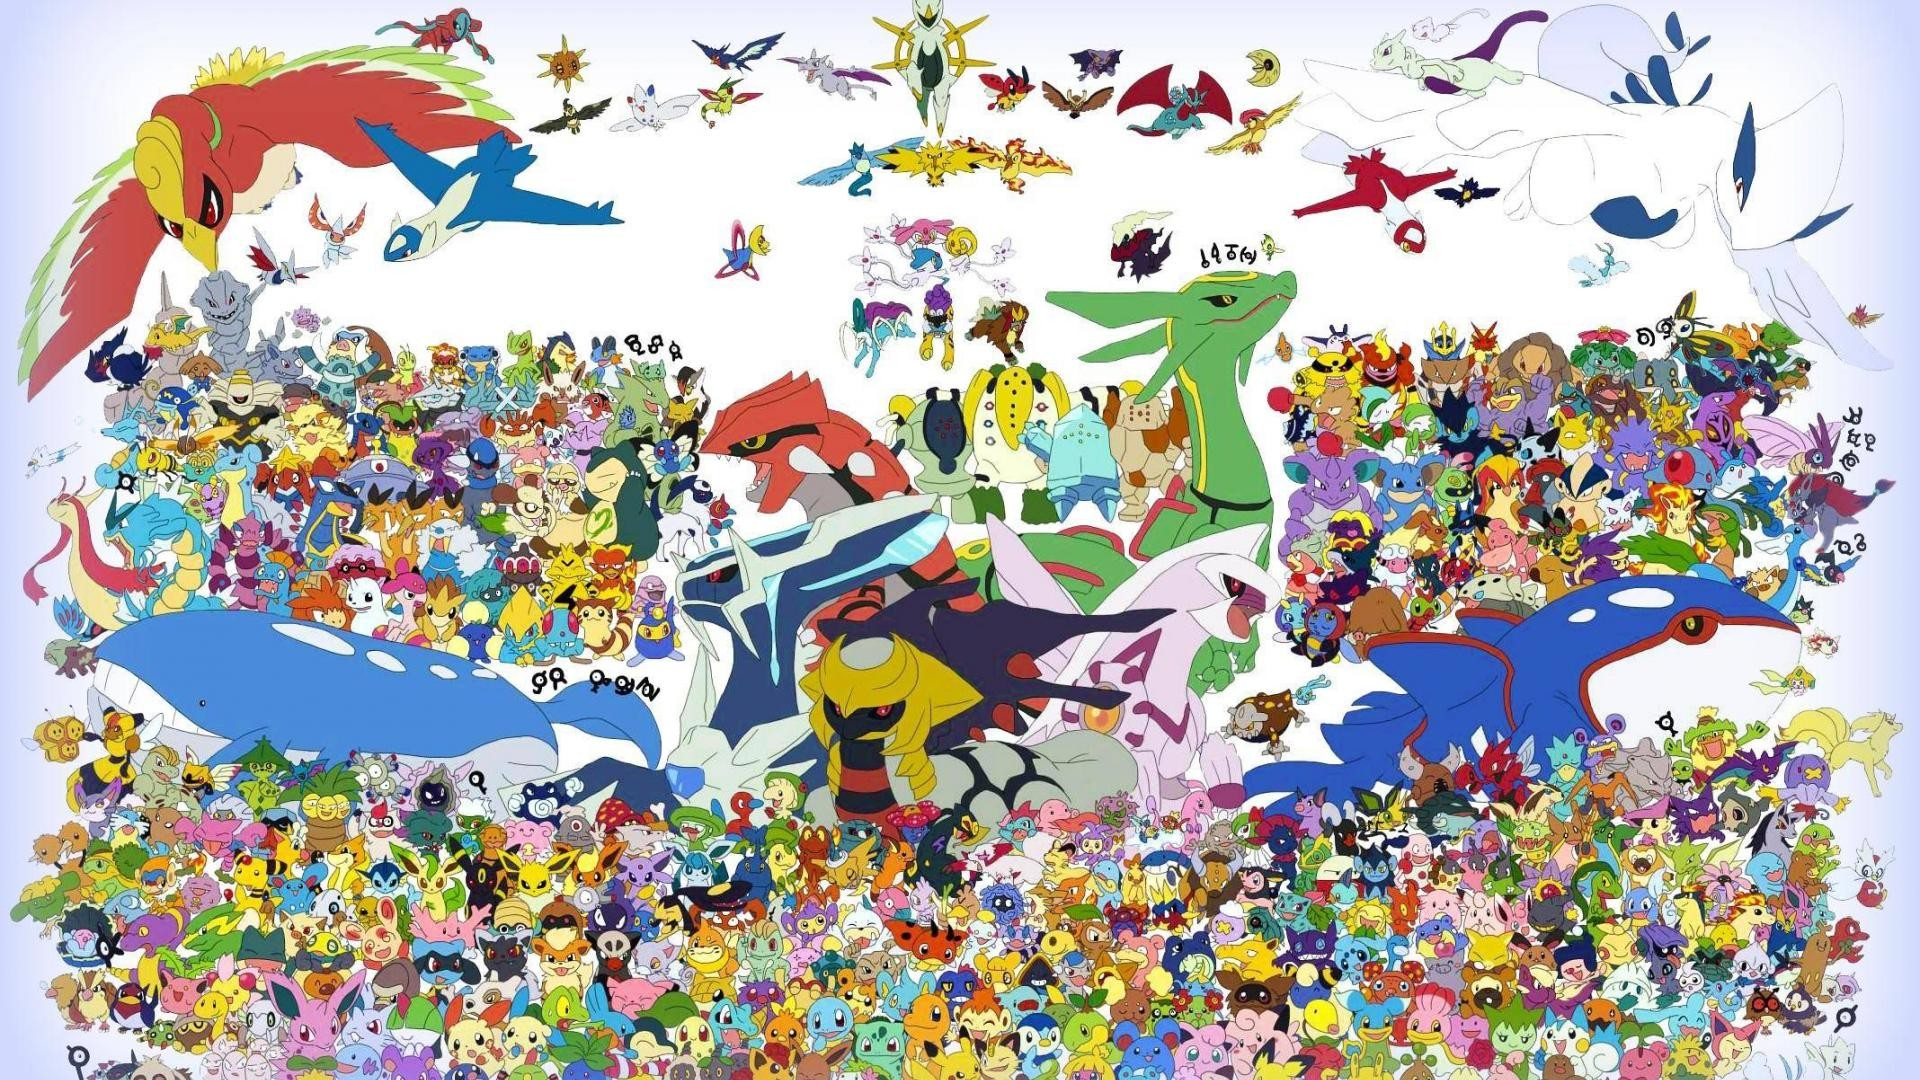 okemon Wallpapers HD Images of Pokemon Ultra HD K   HD Wallpapers    Pinterest   Hd wallpaper, Wallpaper and Wallpaper backgrounds